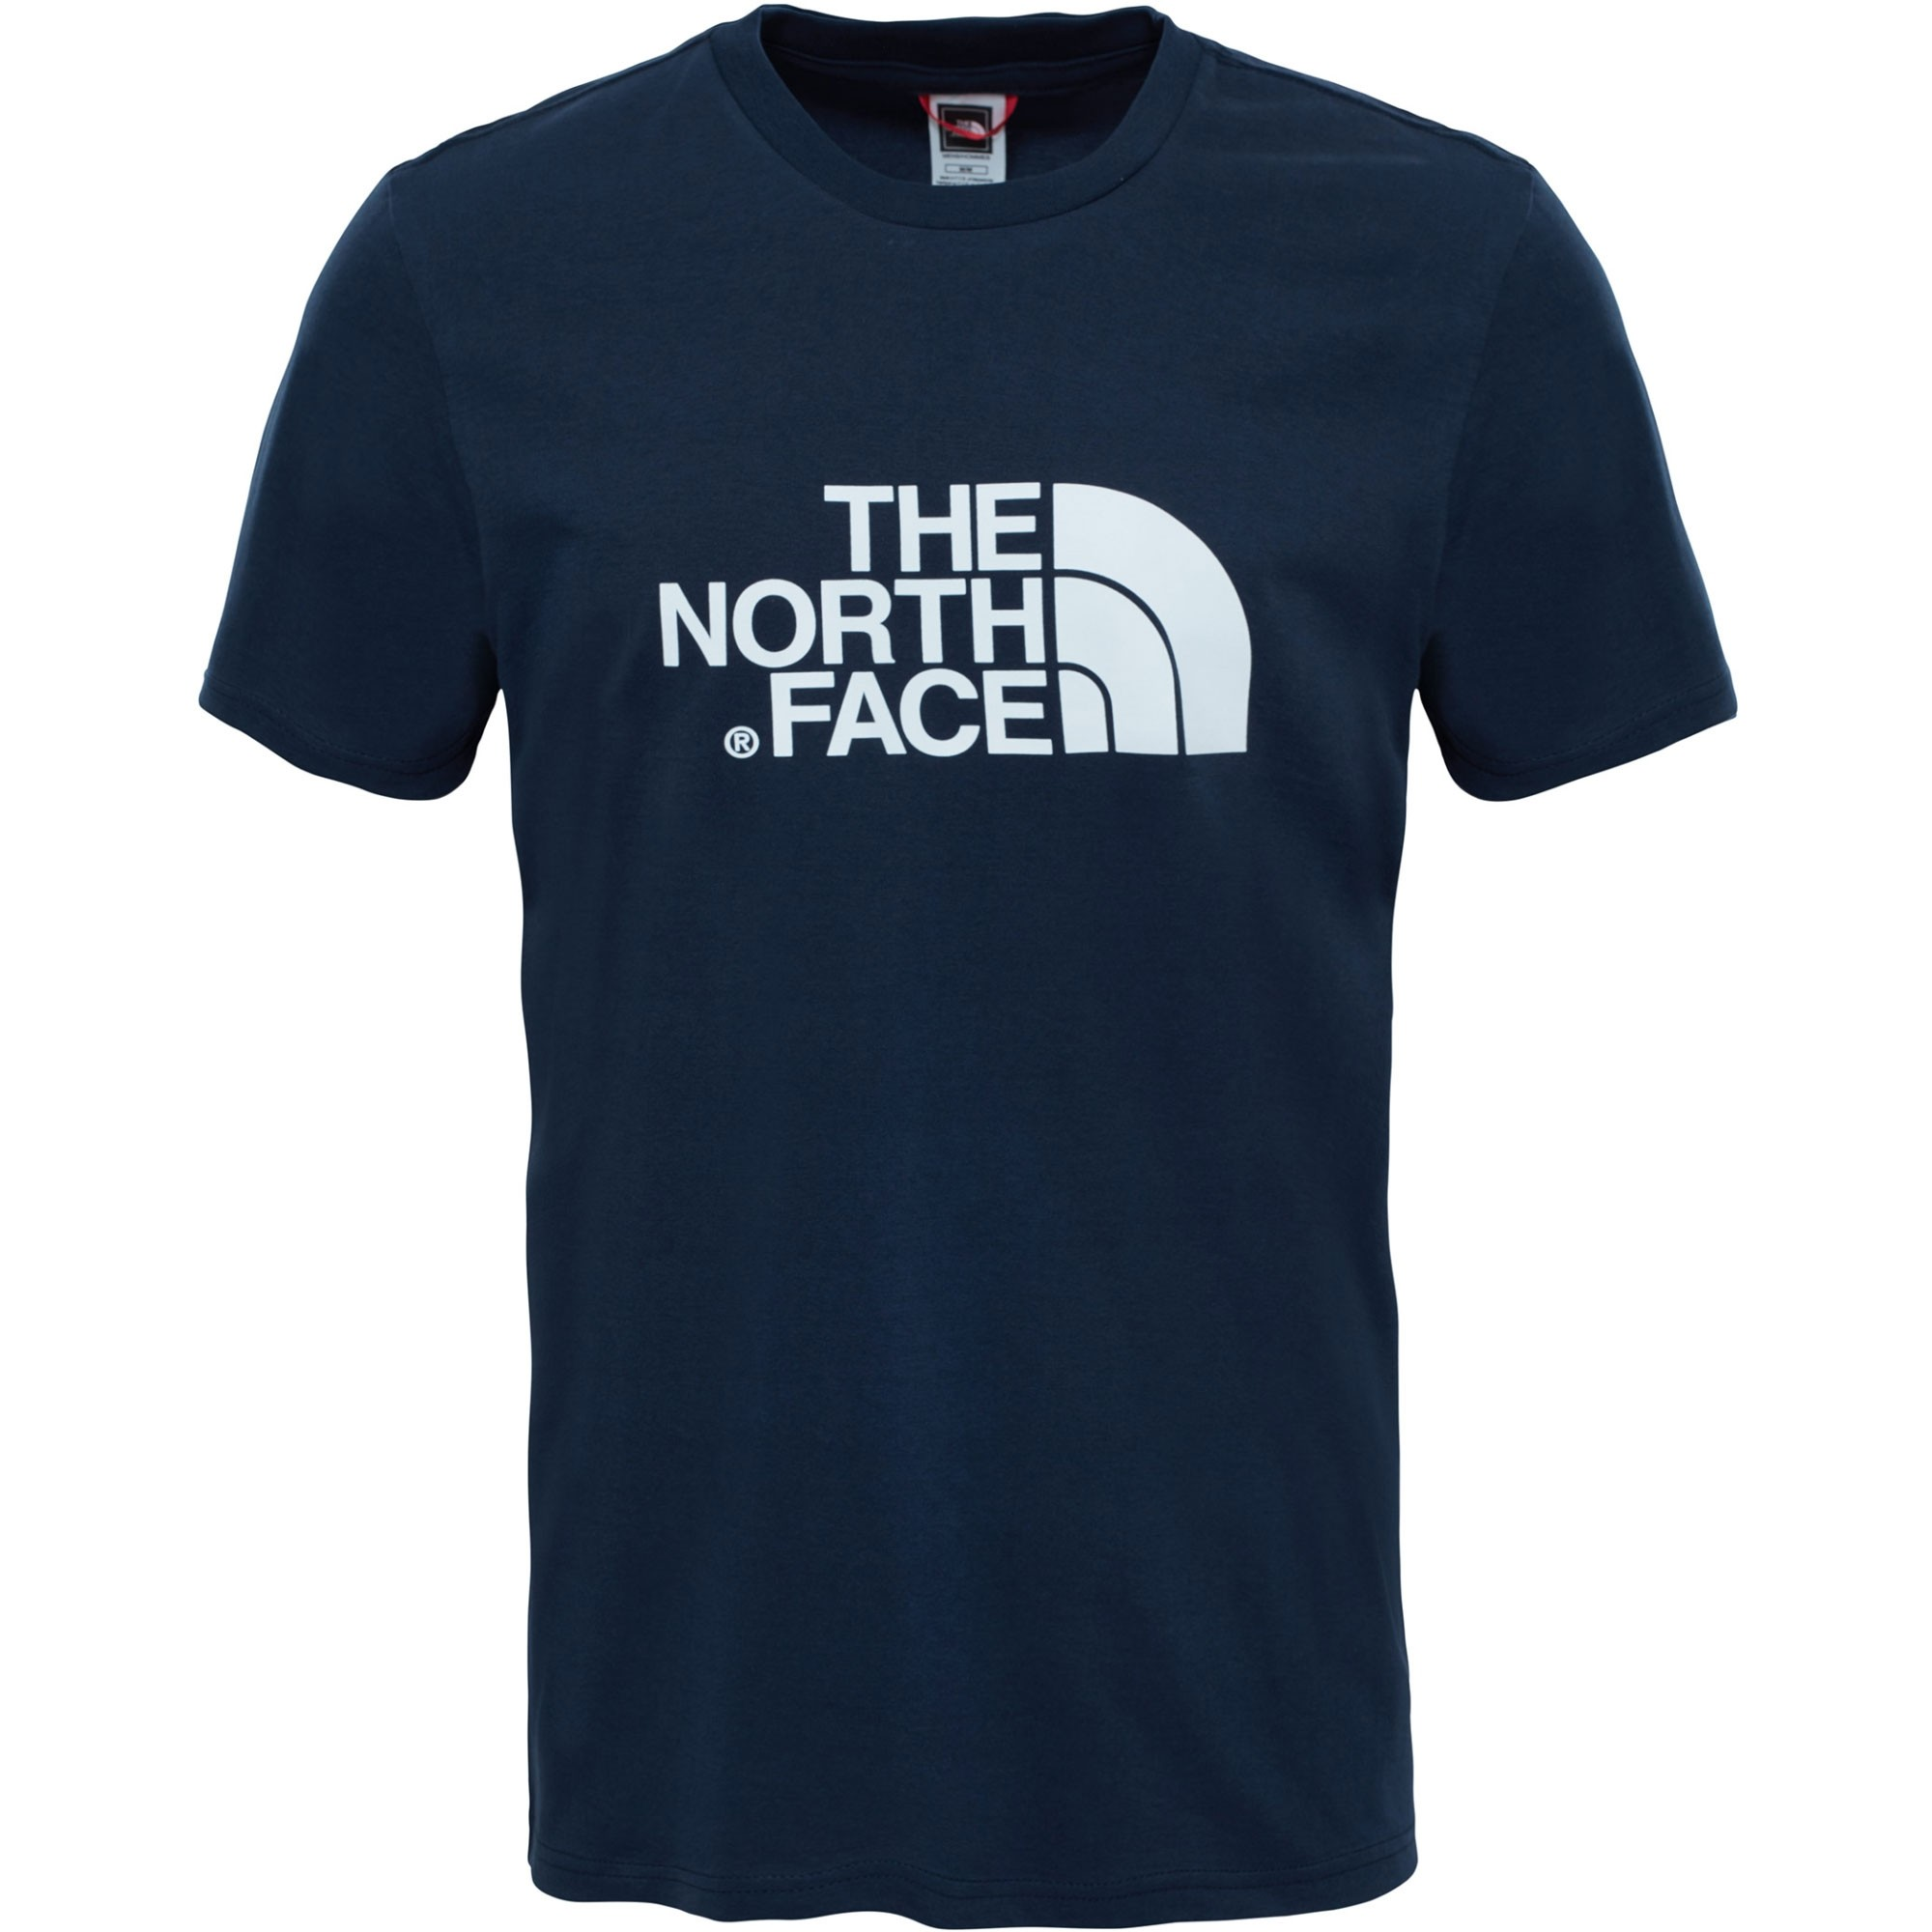 The North Face Short Sleeved Easy Tee - Urban Navy/TNF White